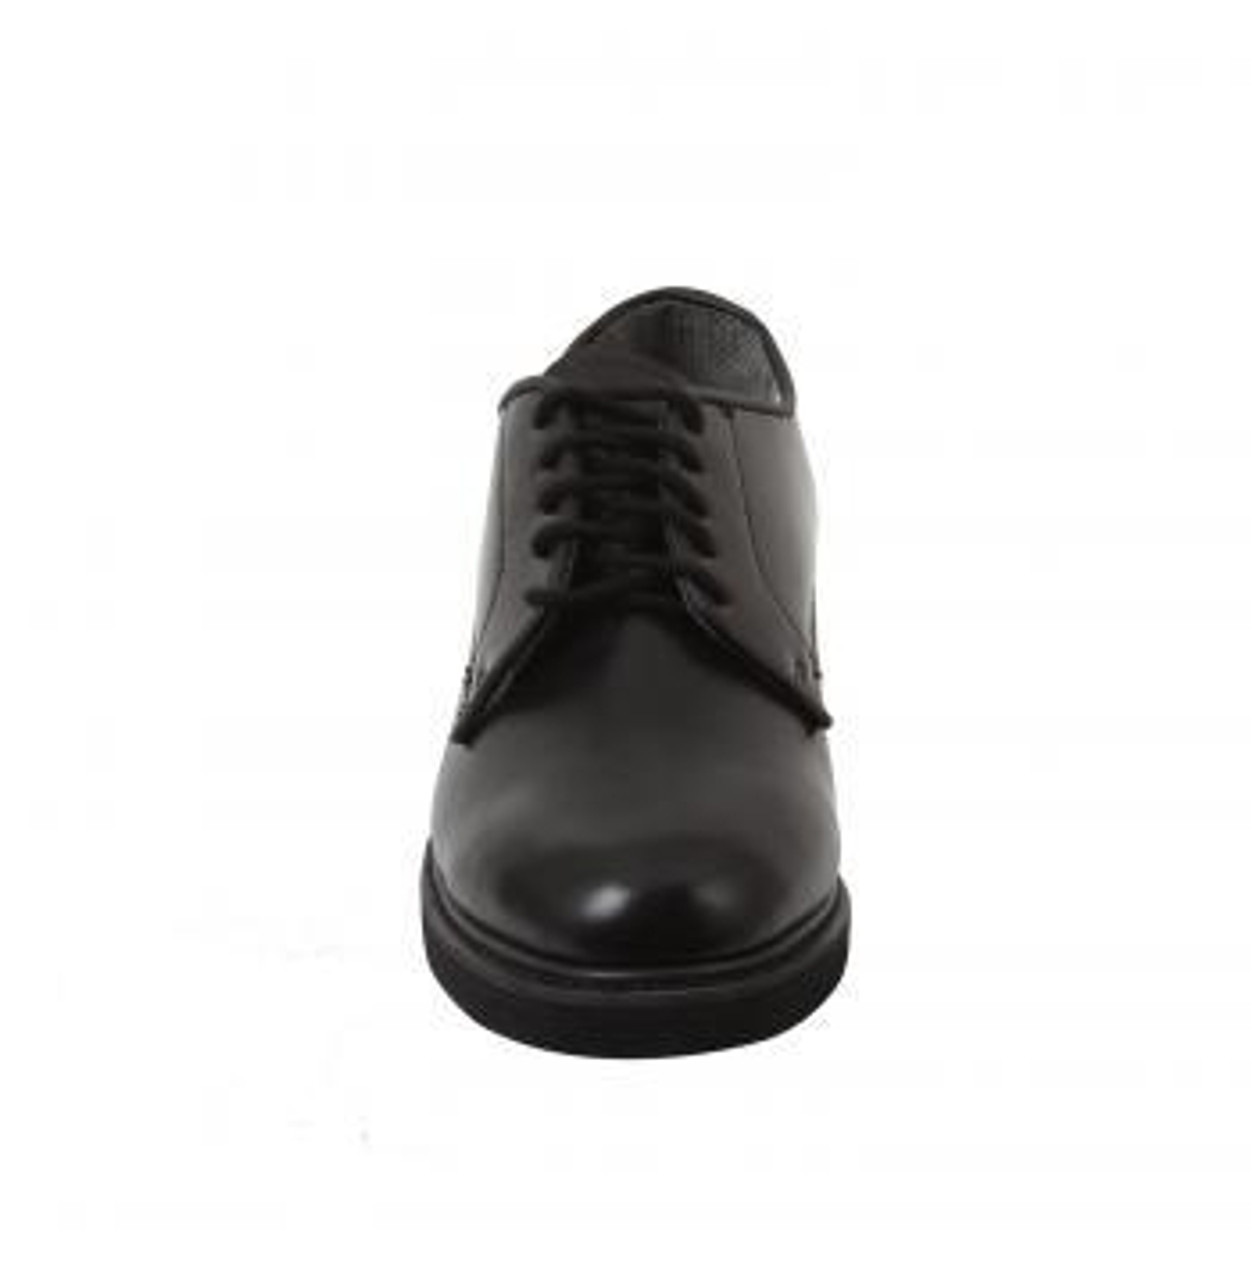 Military Uniform Oxford Leather Shoes from Hessen Tactical